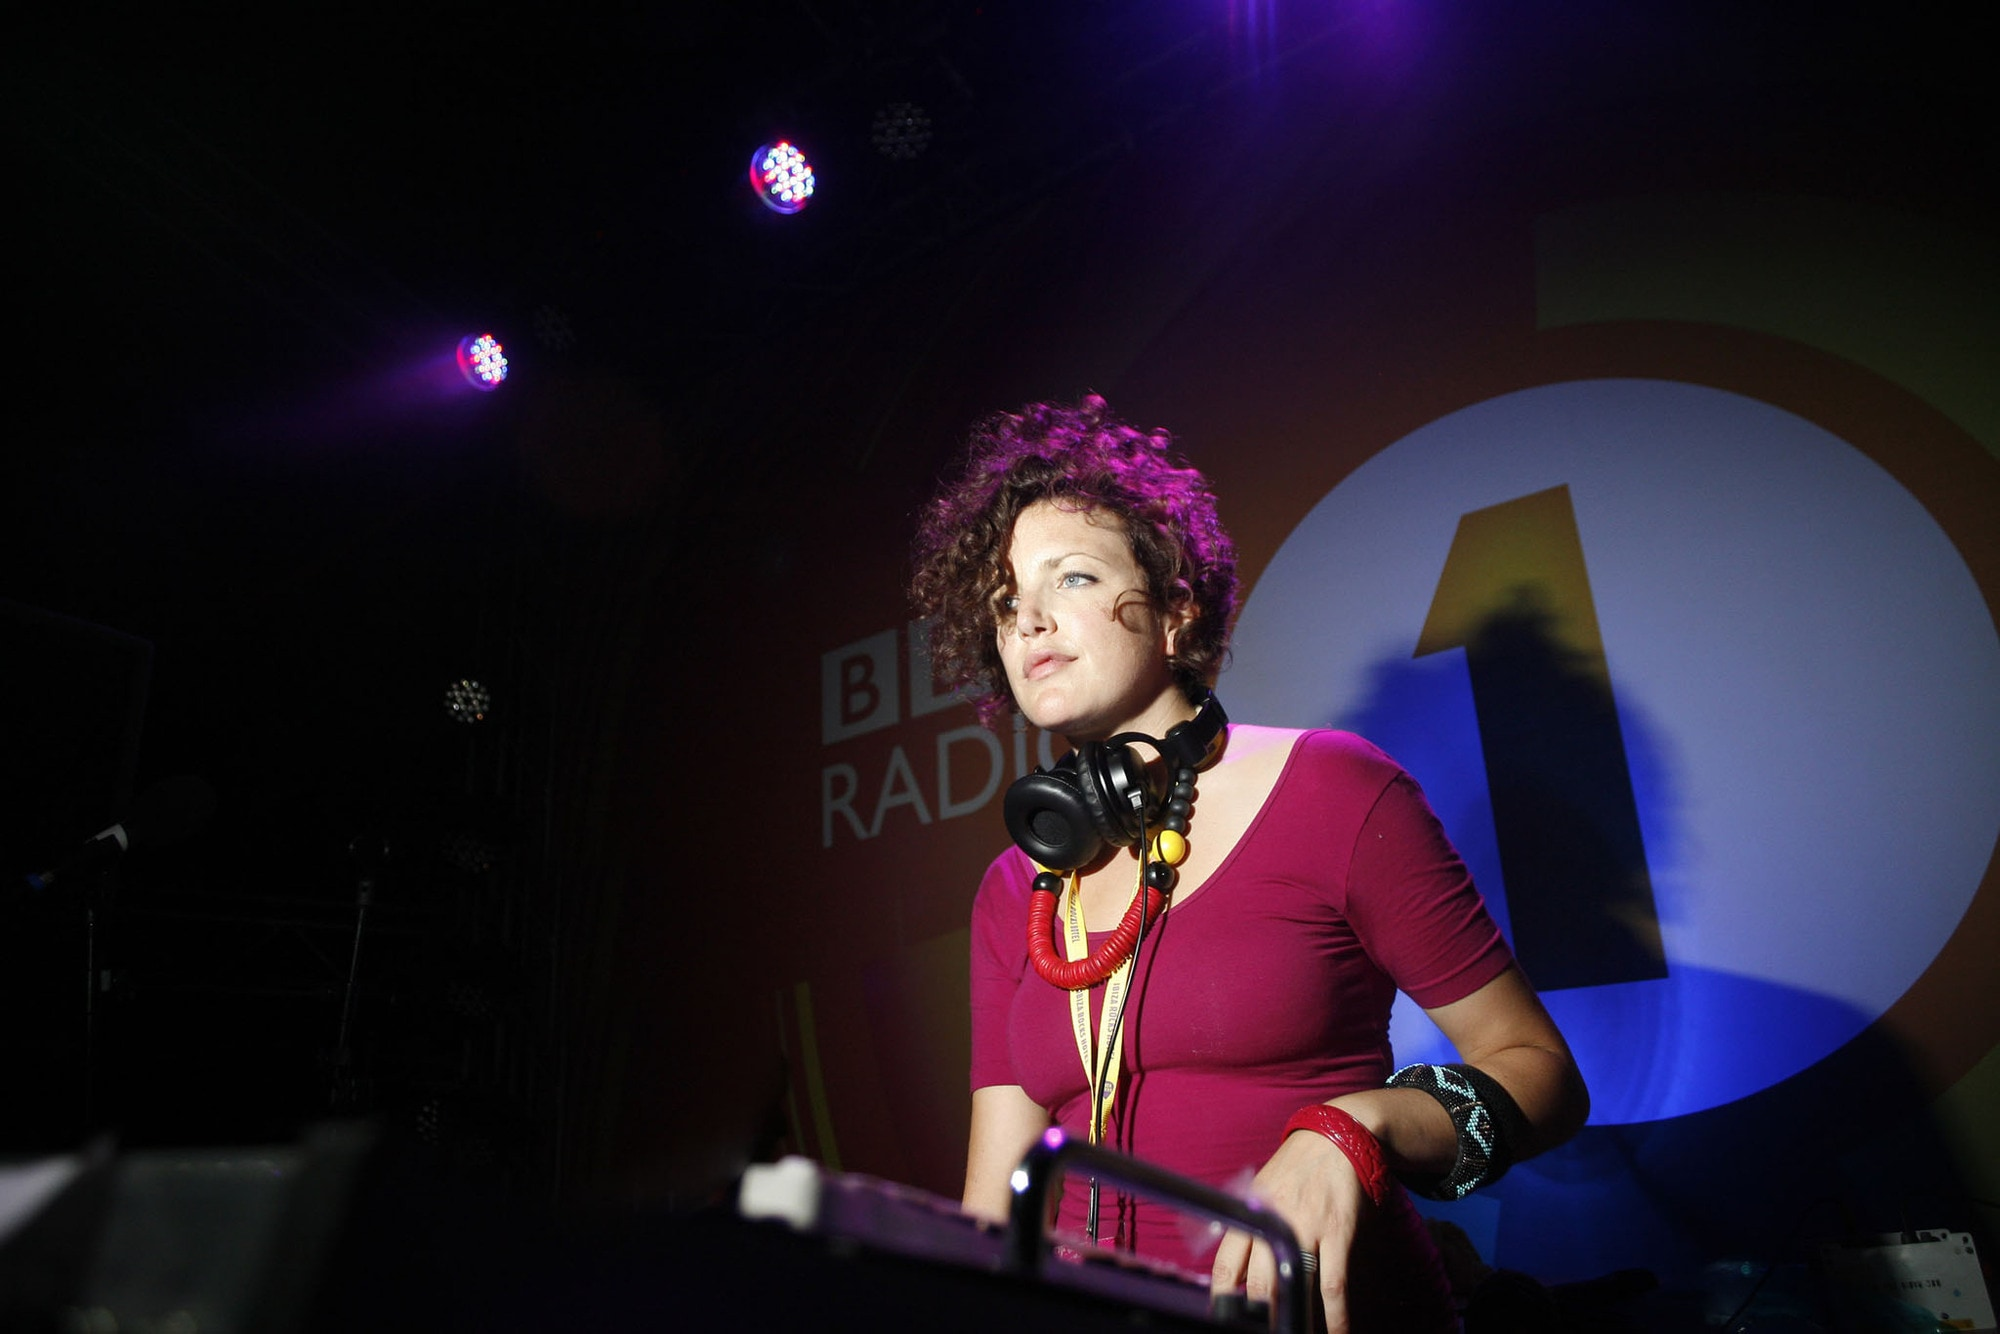 BBC Radio 1\'s new show is designed specifically for iPlayer